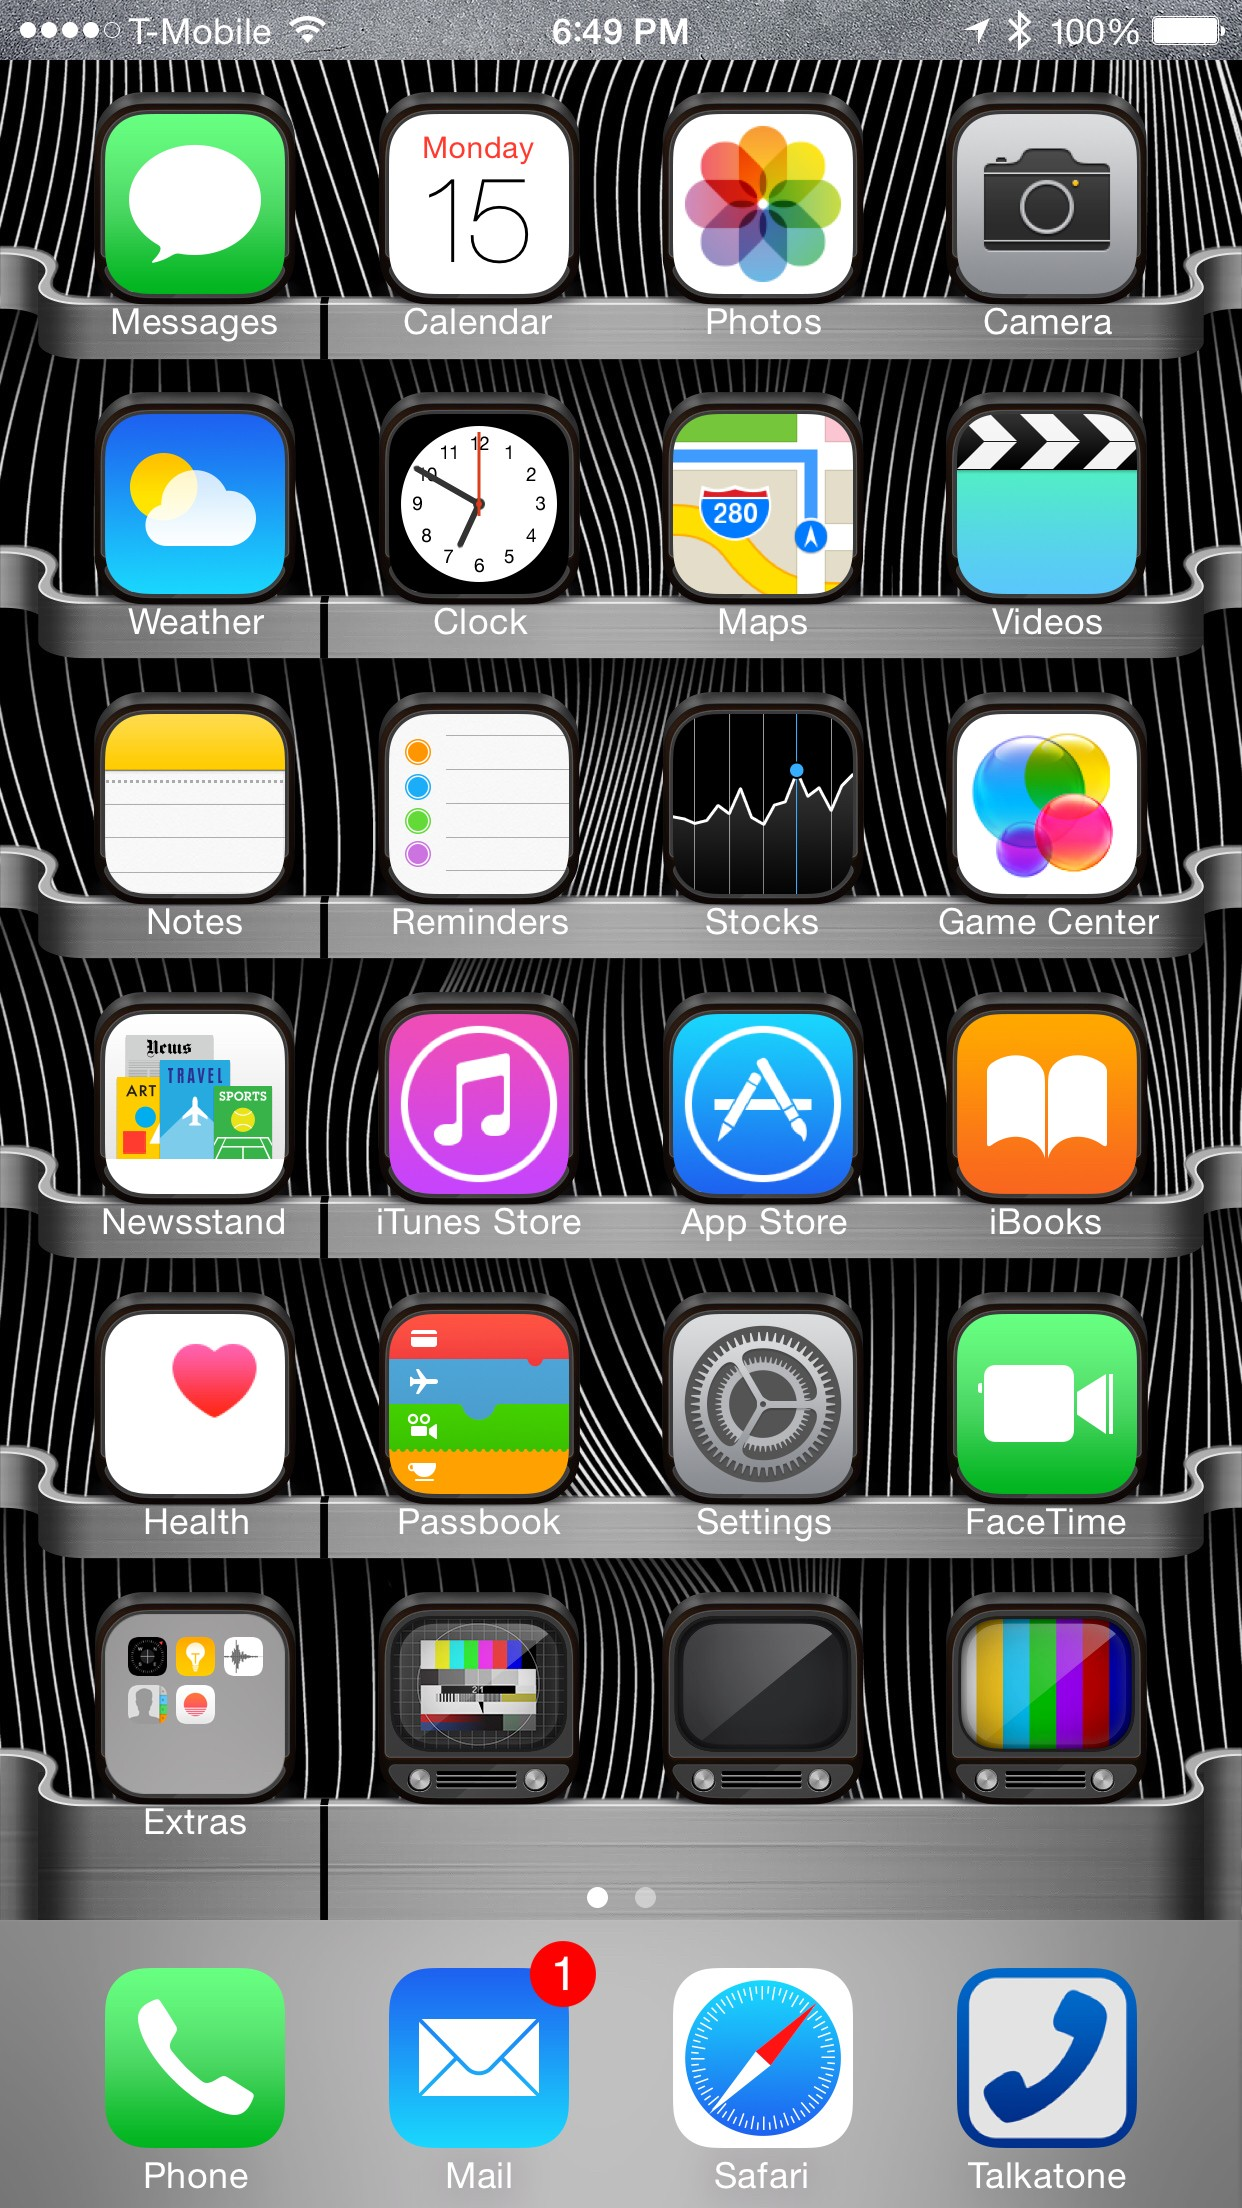 My iPhone 6 plus home screen